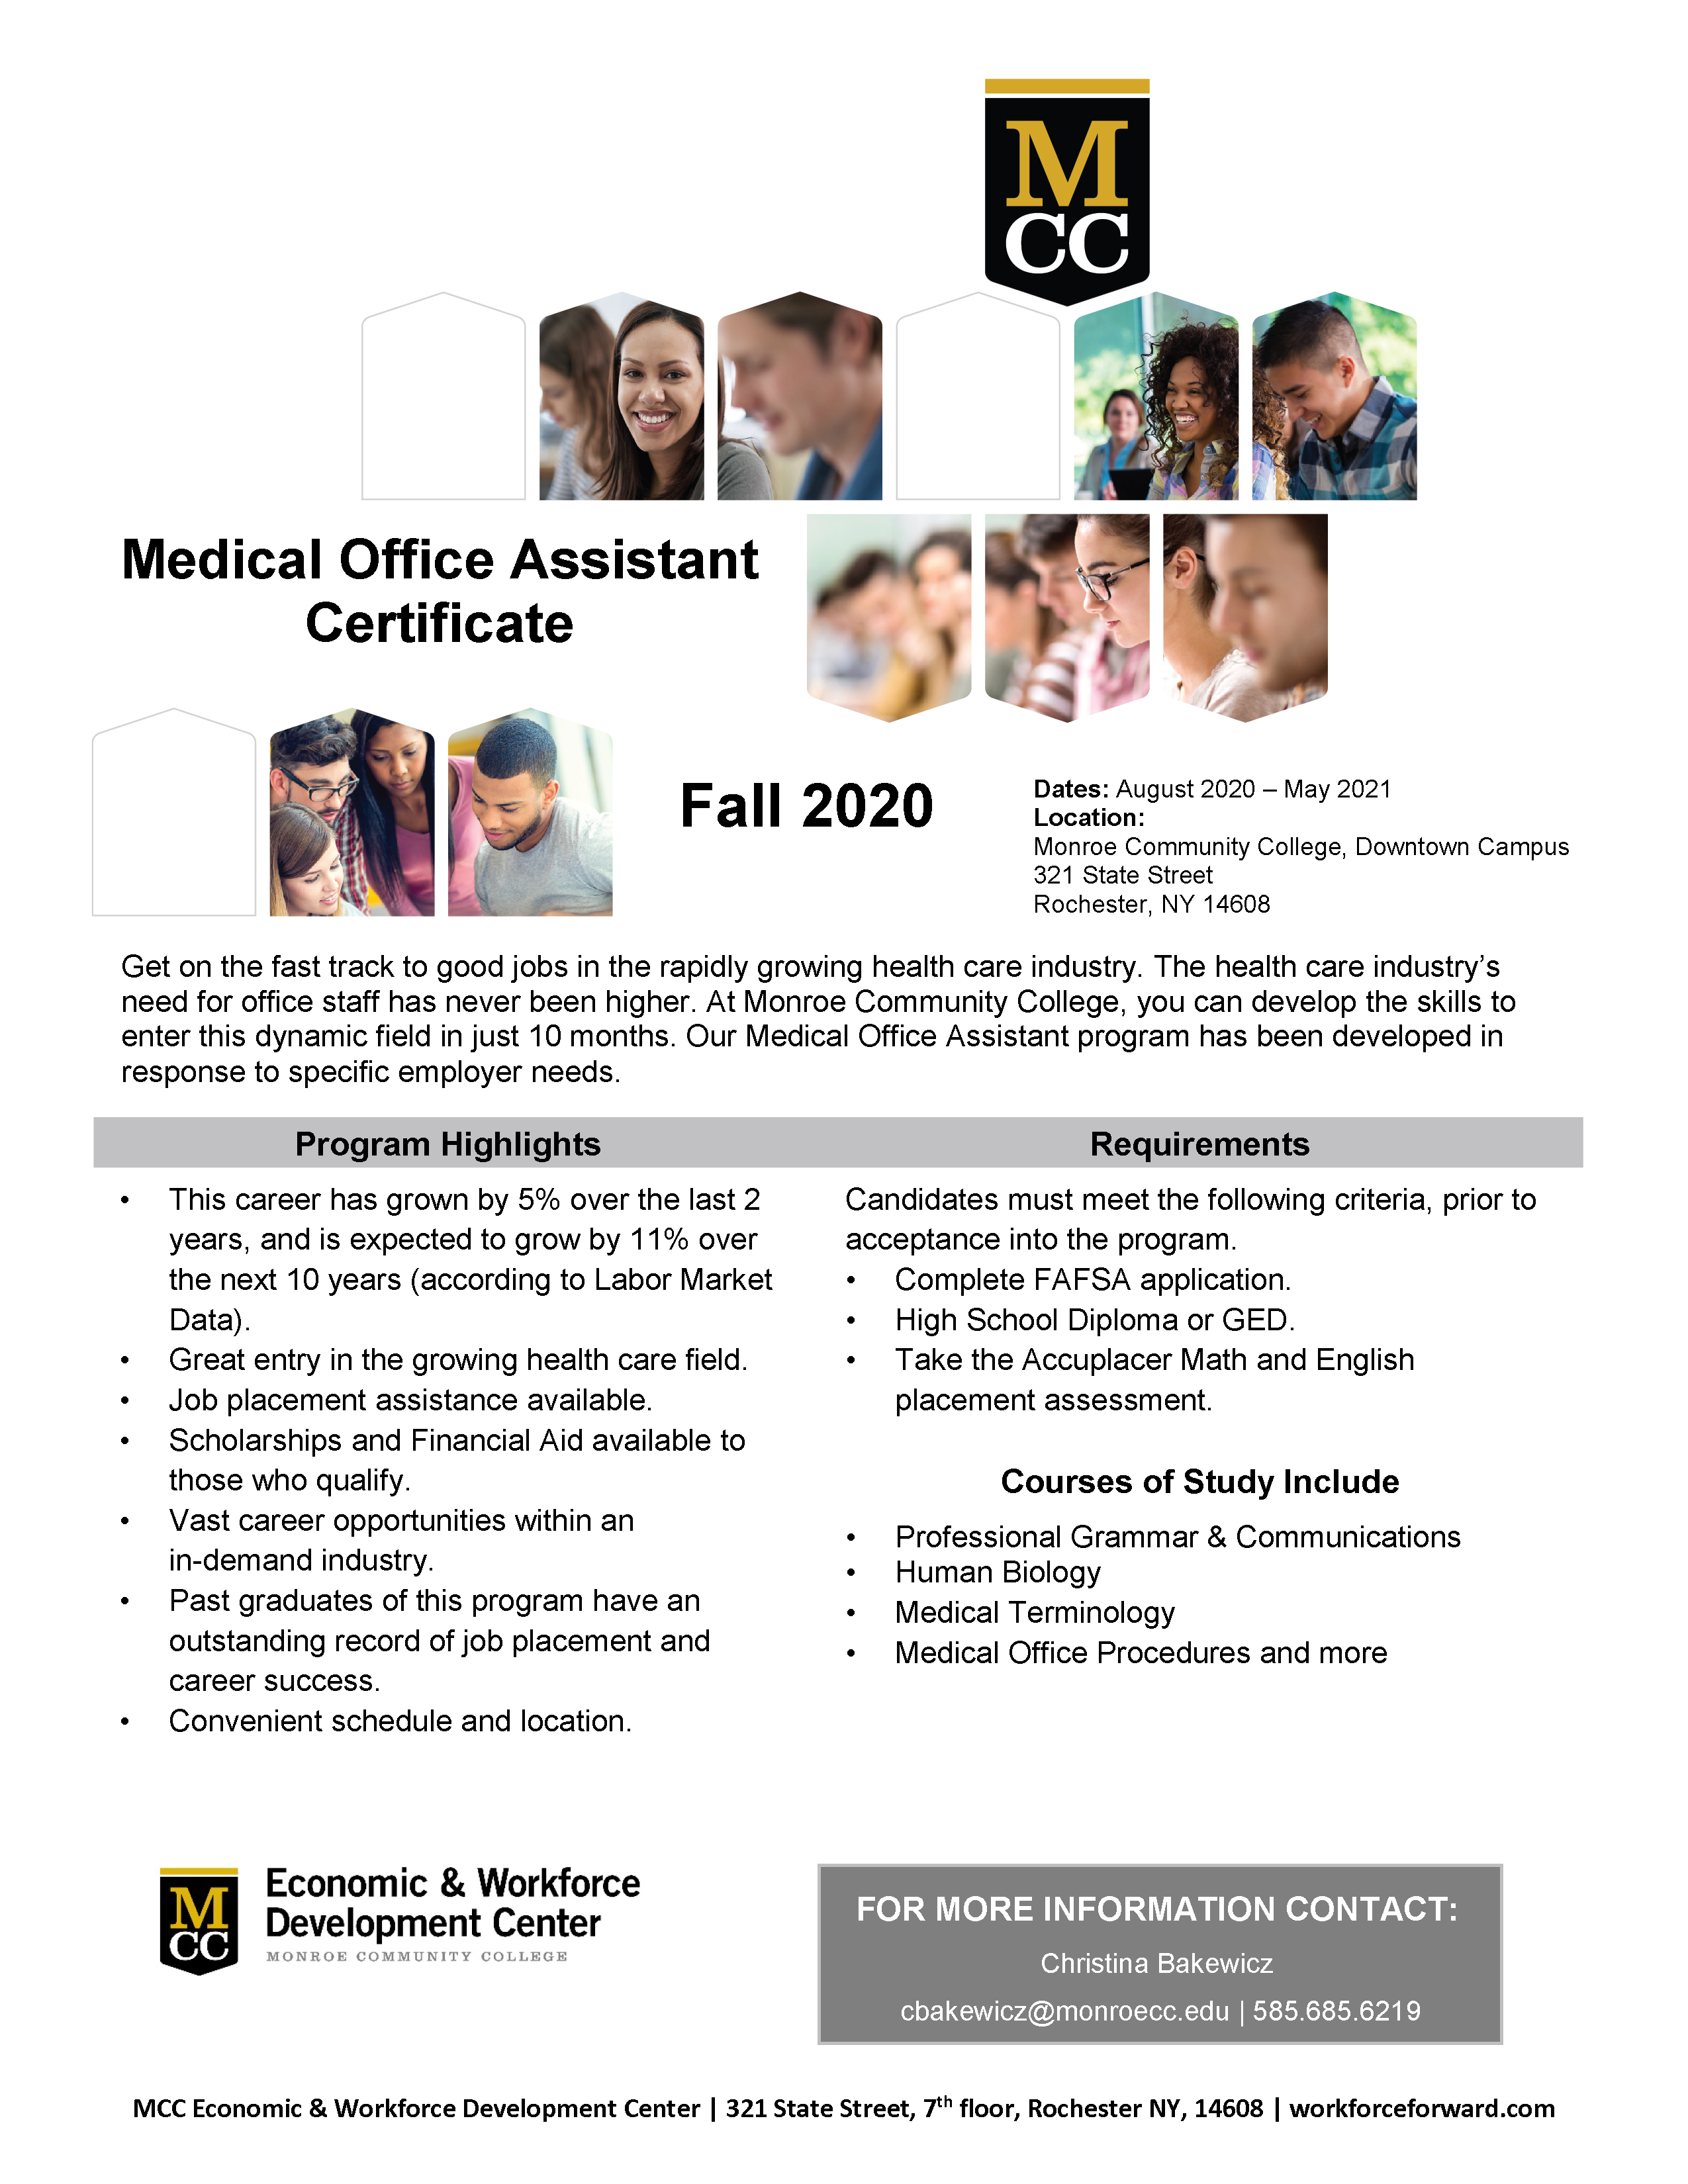 Flyer information for the Medical Office Assistant Certificate for Spring 2021